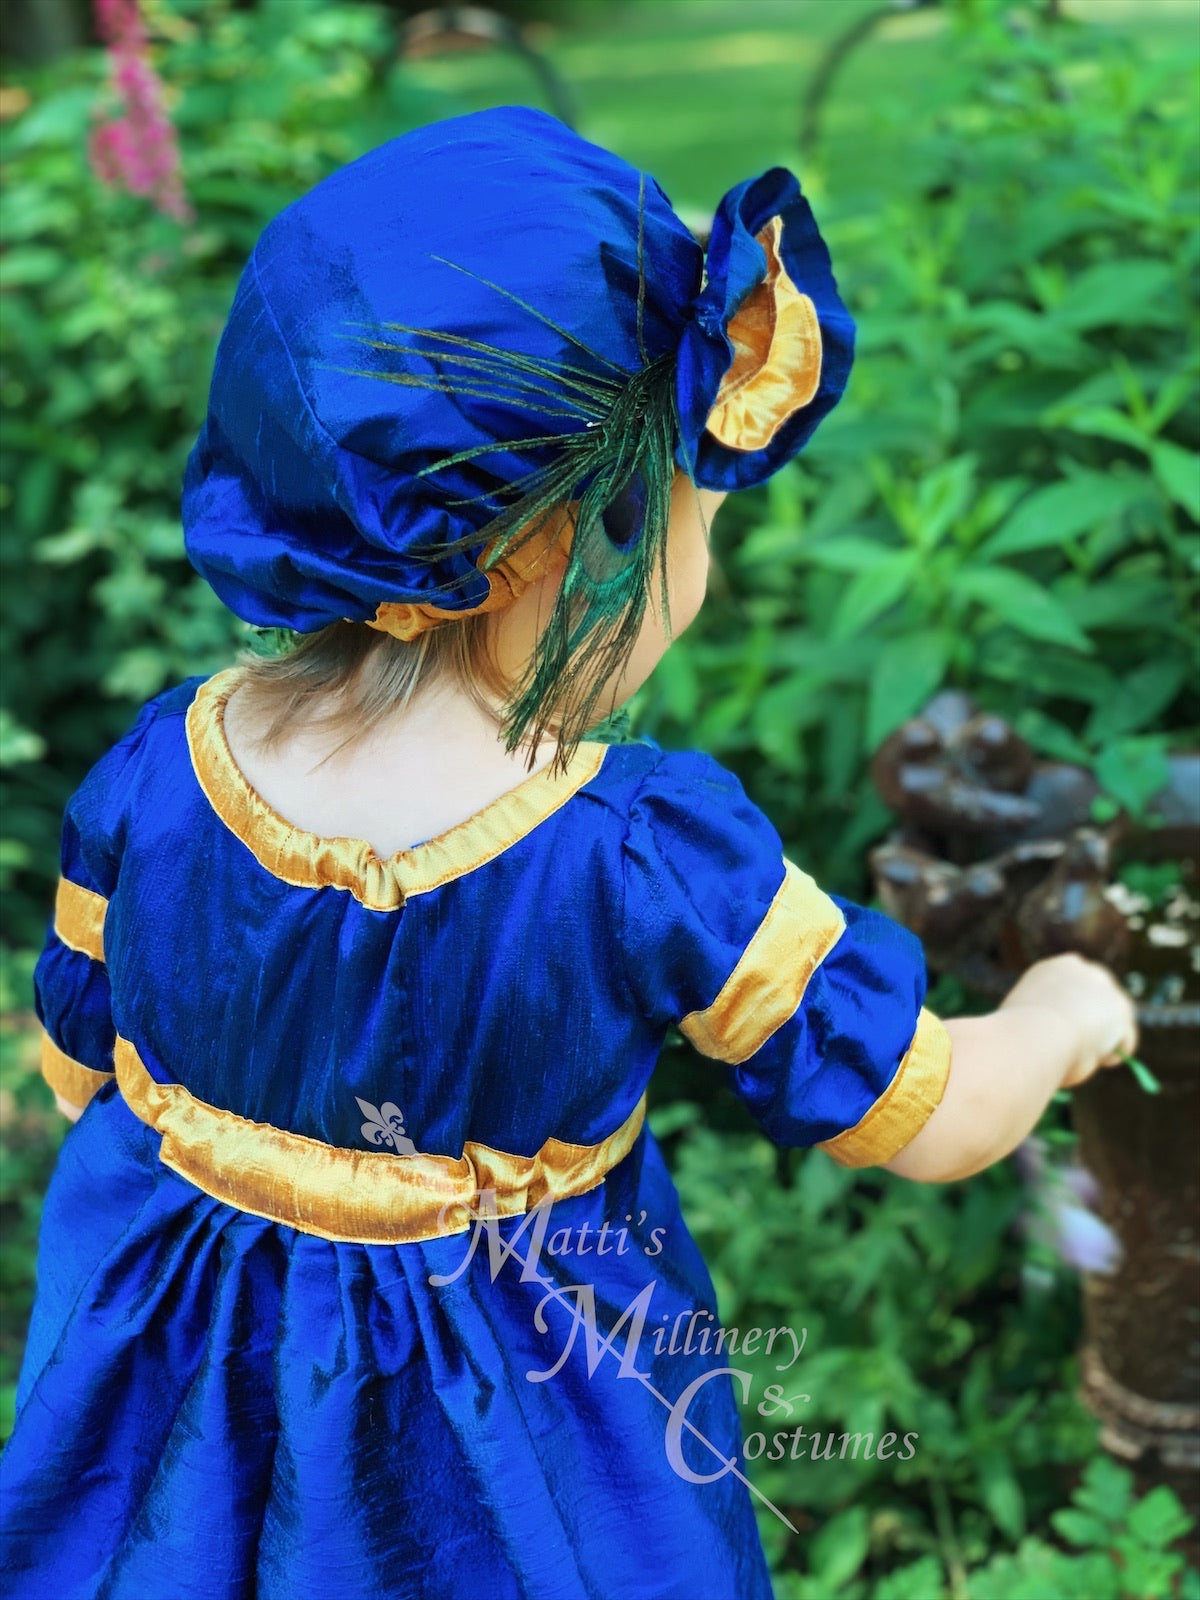 Childrens Regency Ball Gown Court Dress Outfit with dress and Tam CUSTOM size and color